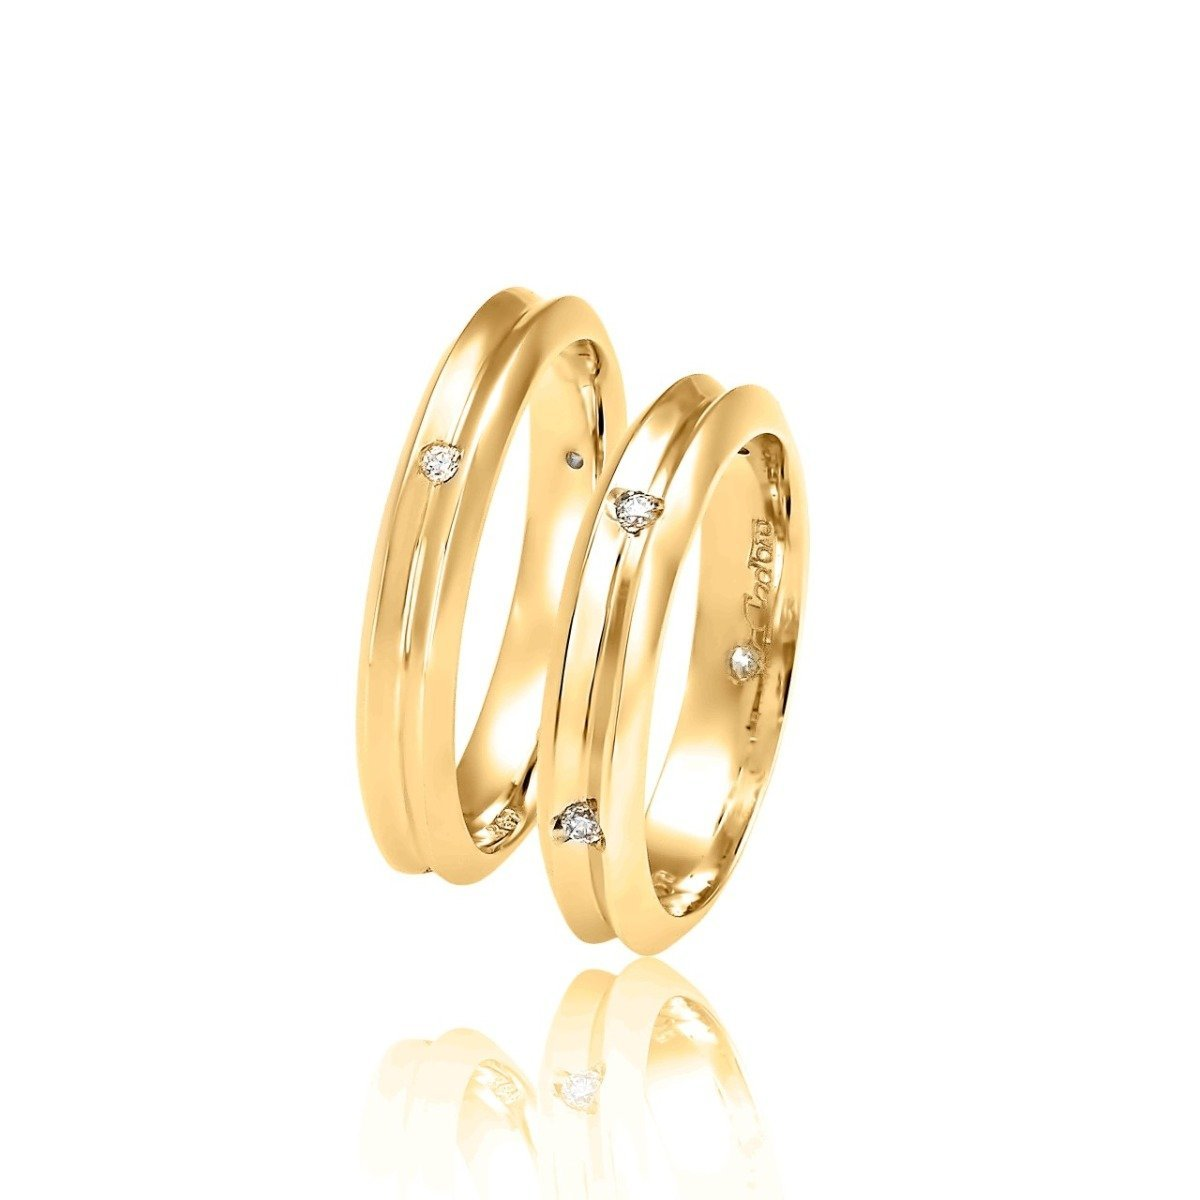 FaCad'oro WR-18 Gold Wedding Ring 9ct or 14ct - Goldy Jewelry